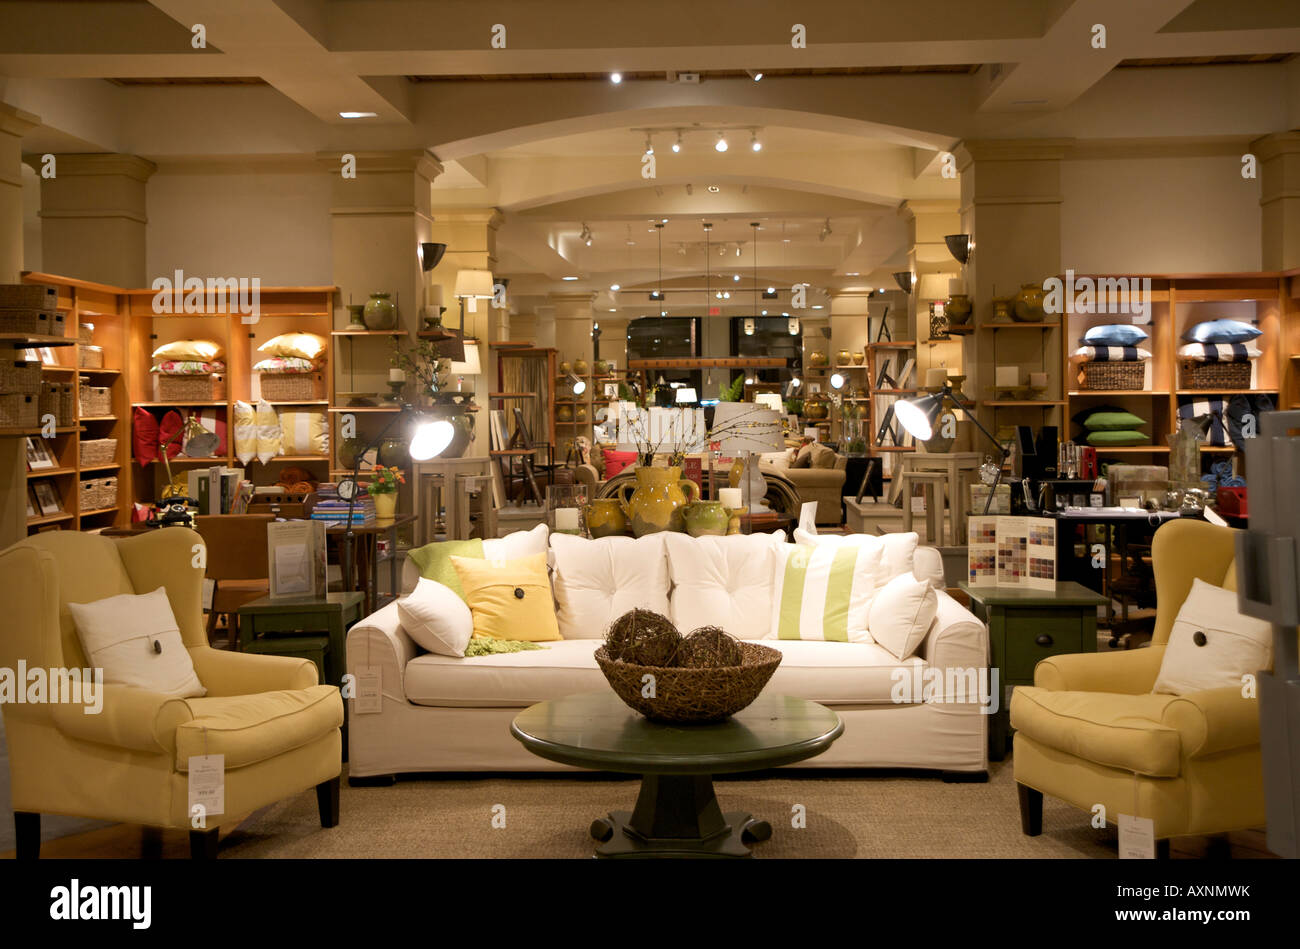 Pottery Barn Store Interior Stock Photo Royalty Free